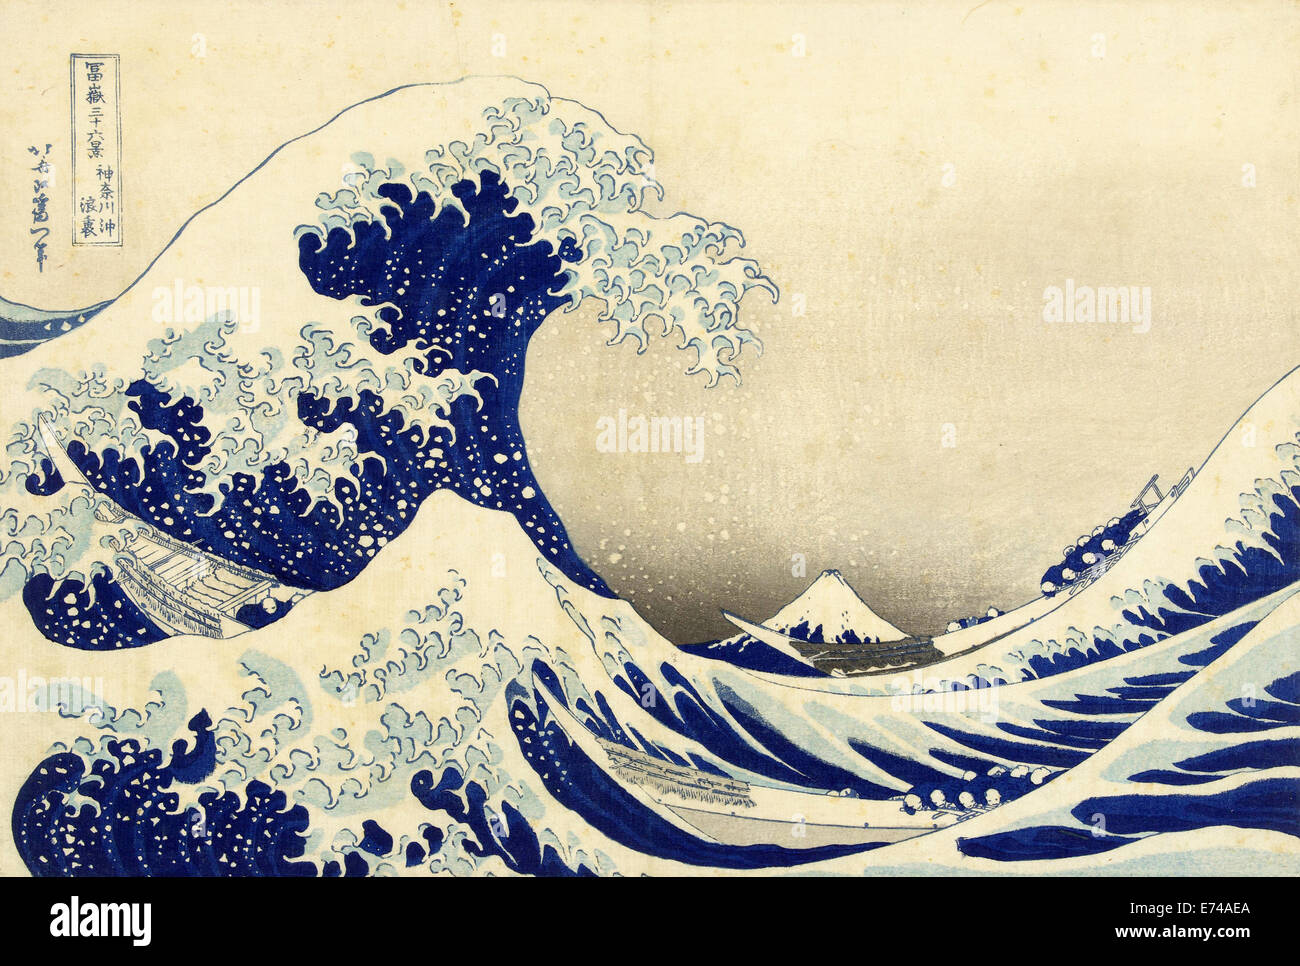 The Great Wave off Kanagawa - by Katsushika Hokusai, 1829 - 1833 - Stock Image